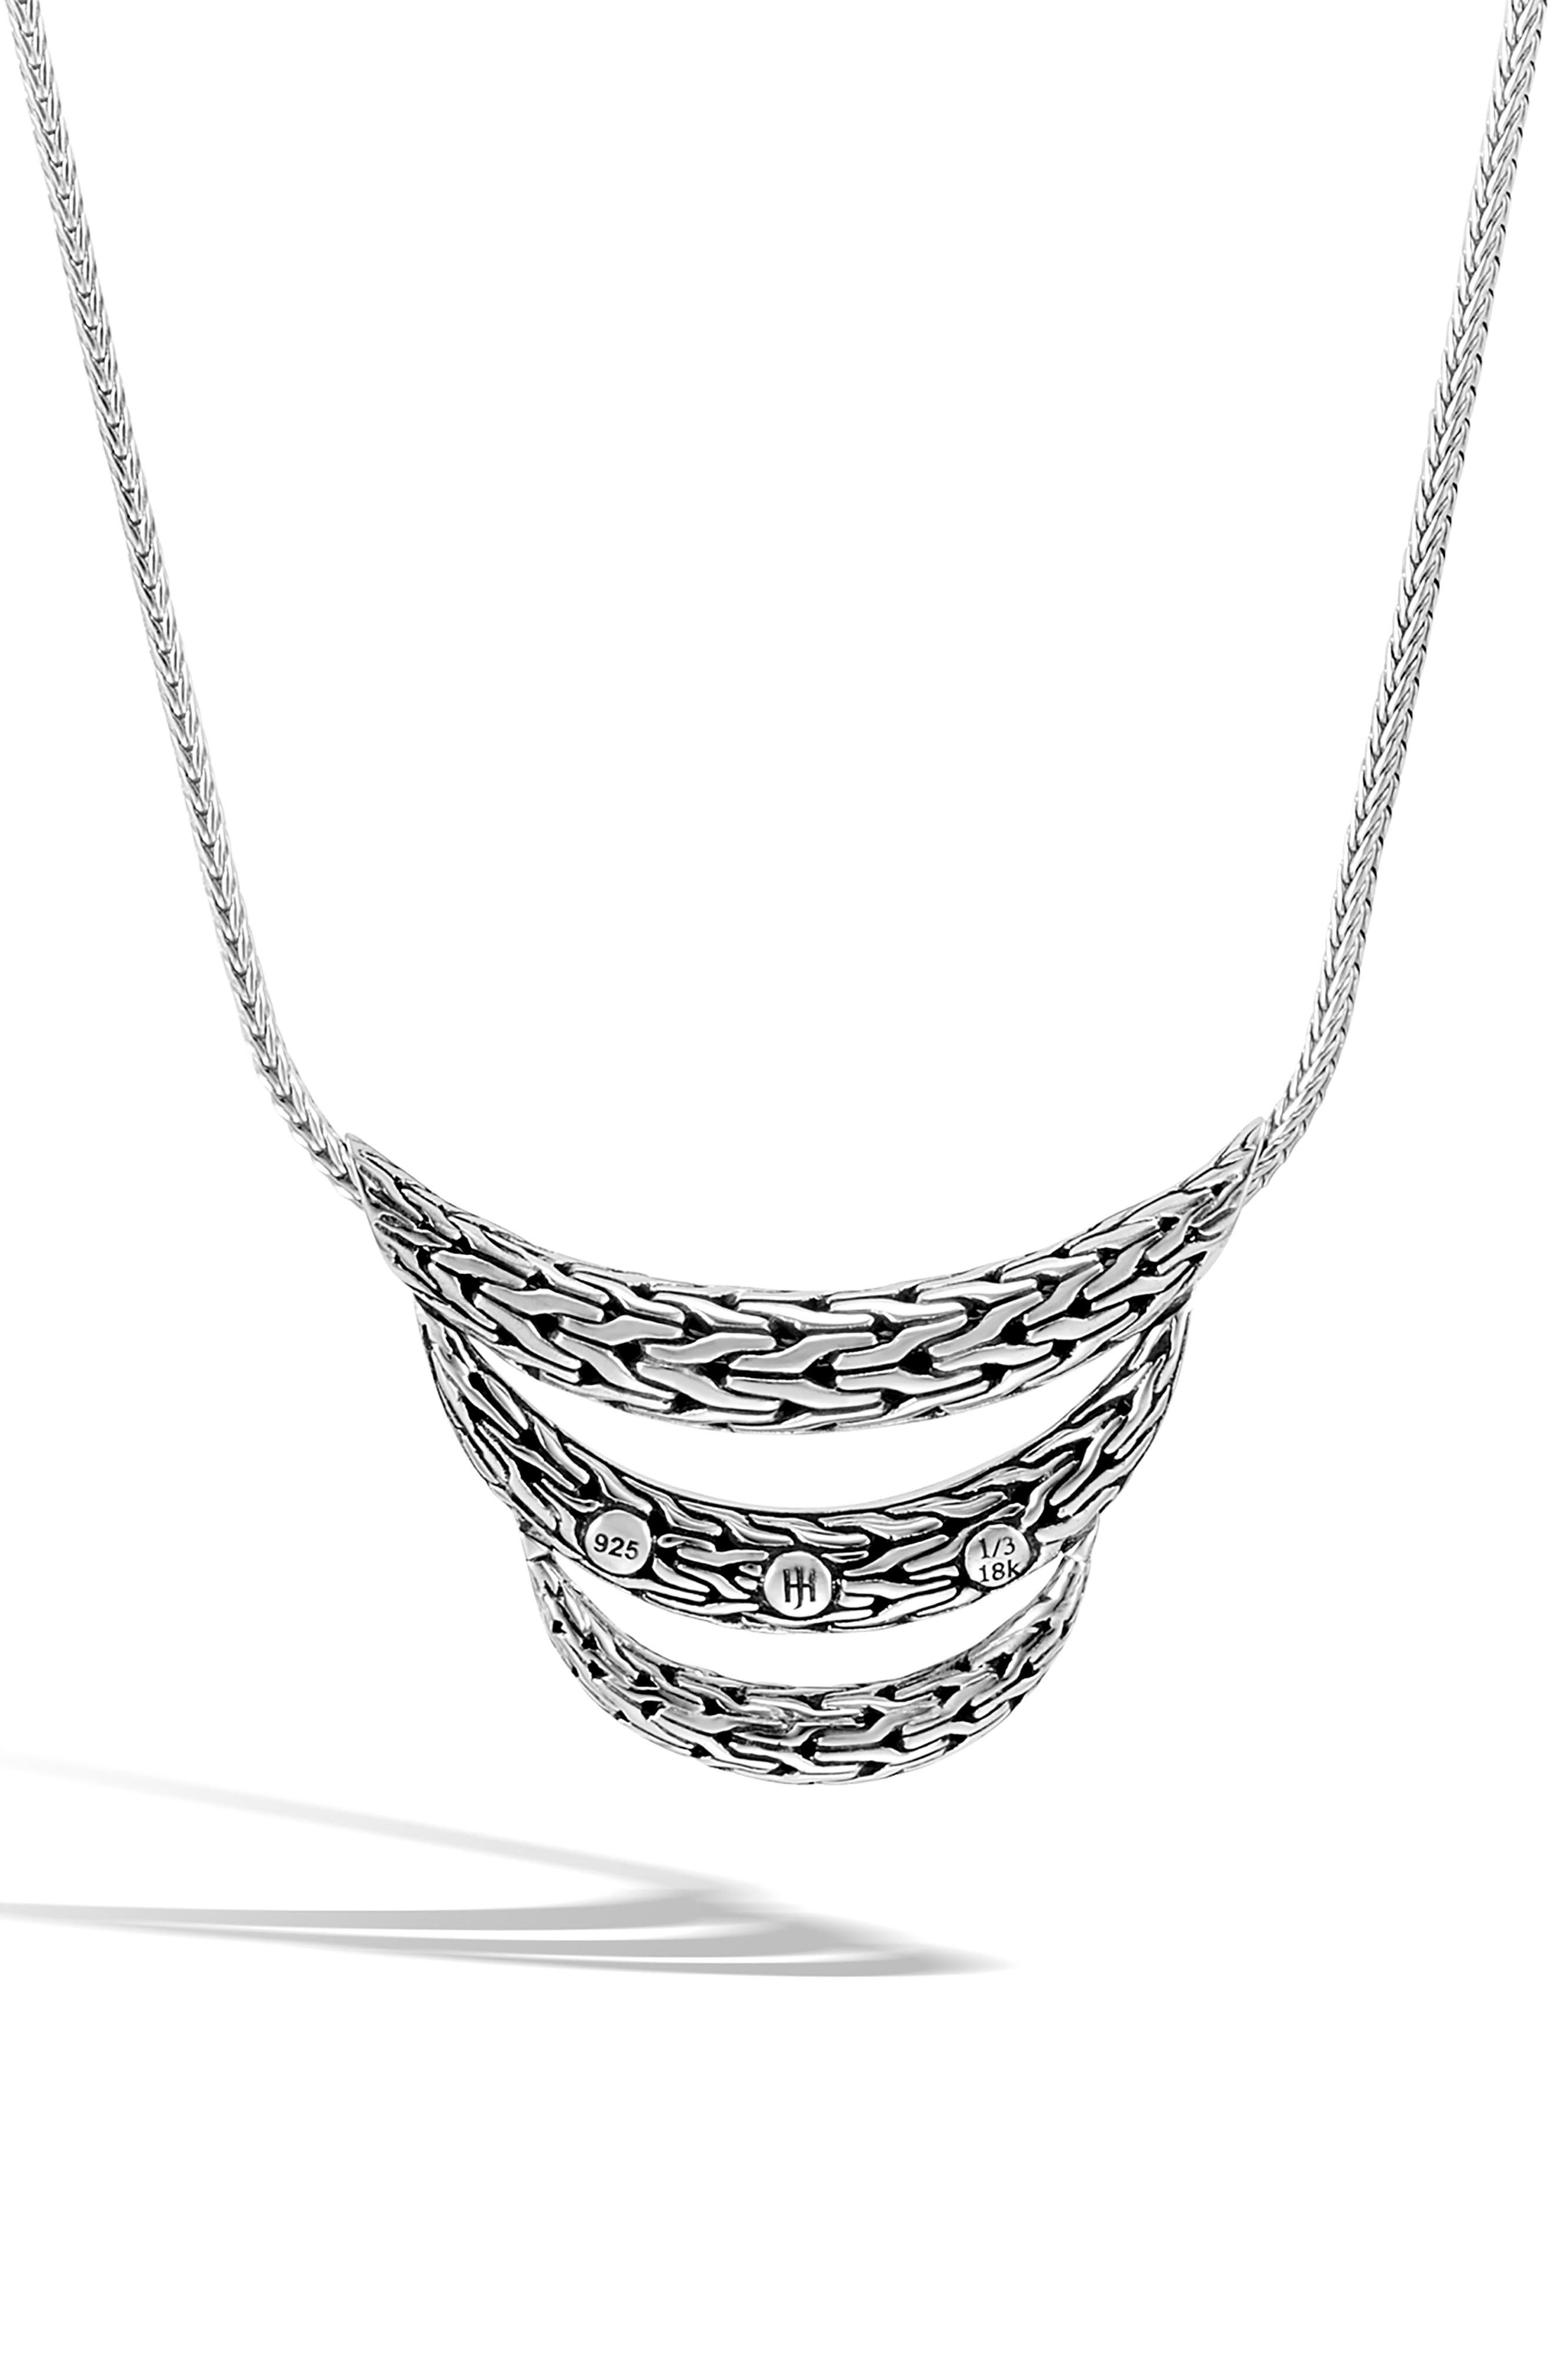 Classic Chain Sterling Silver & 18K Gold Bib Necklace,                             Alternate thumbnail 2, color,                             SILVER/ GOLD